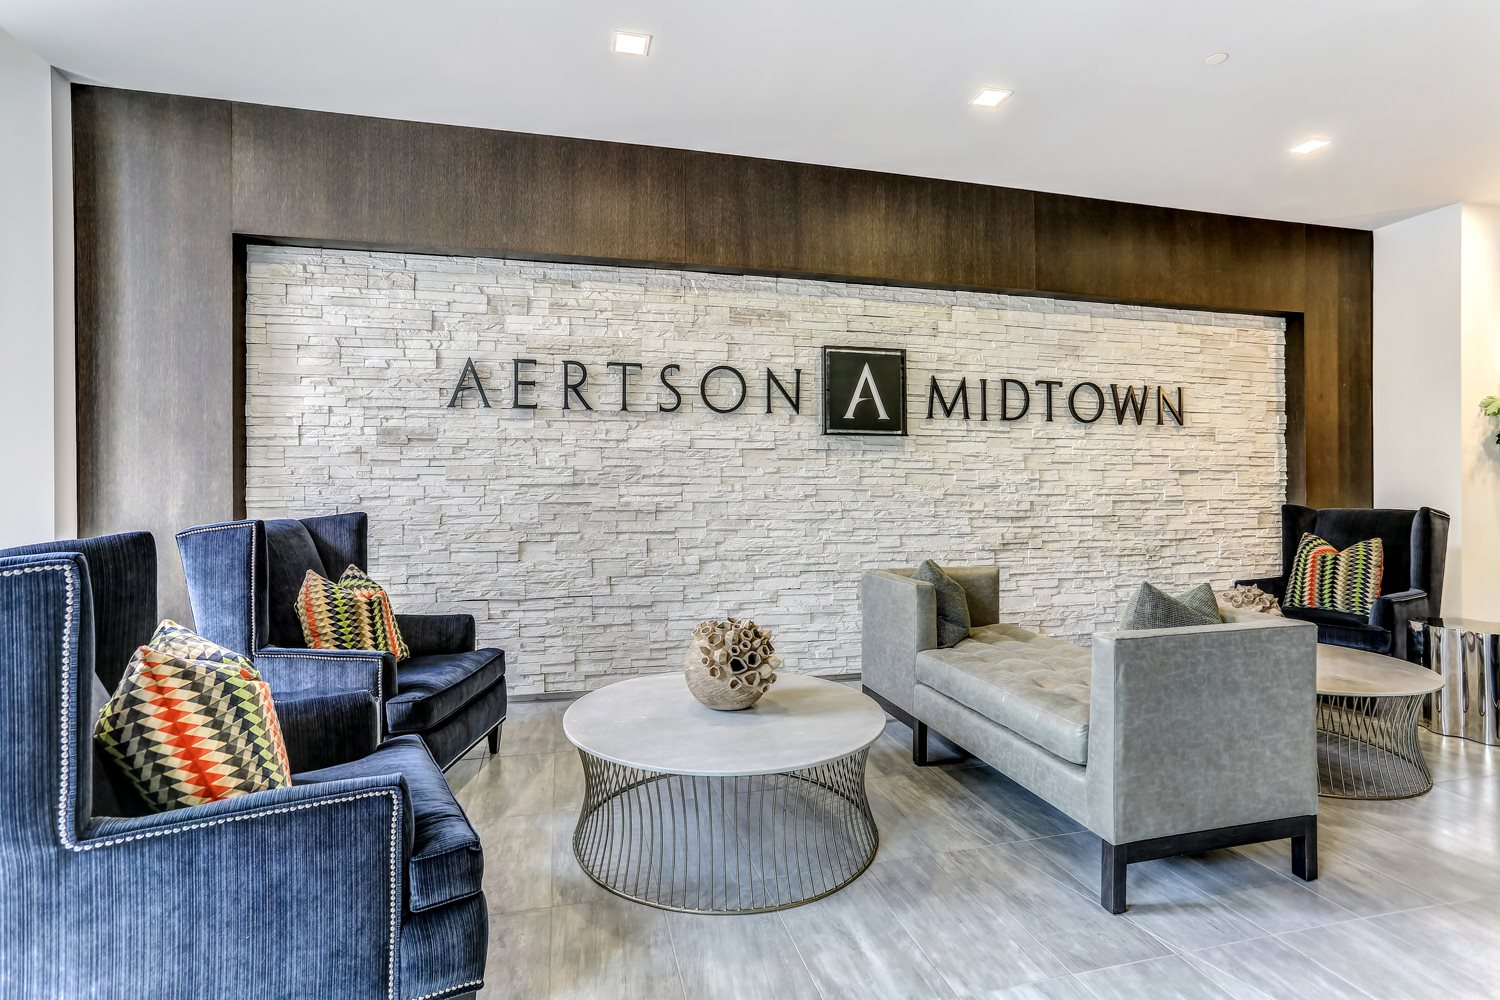 Aertson Midtown Apartment Homes in Nashville